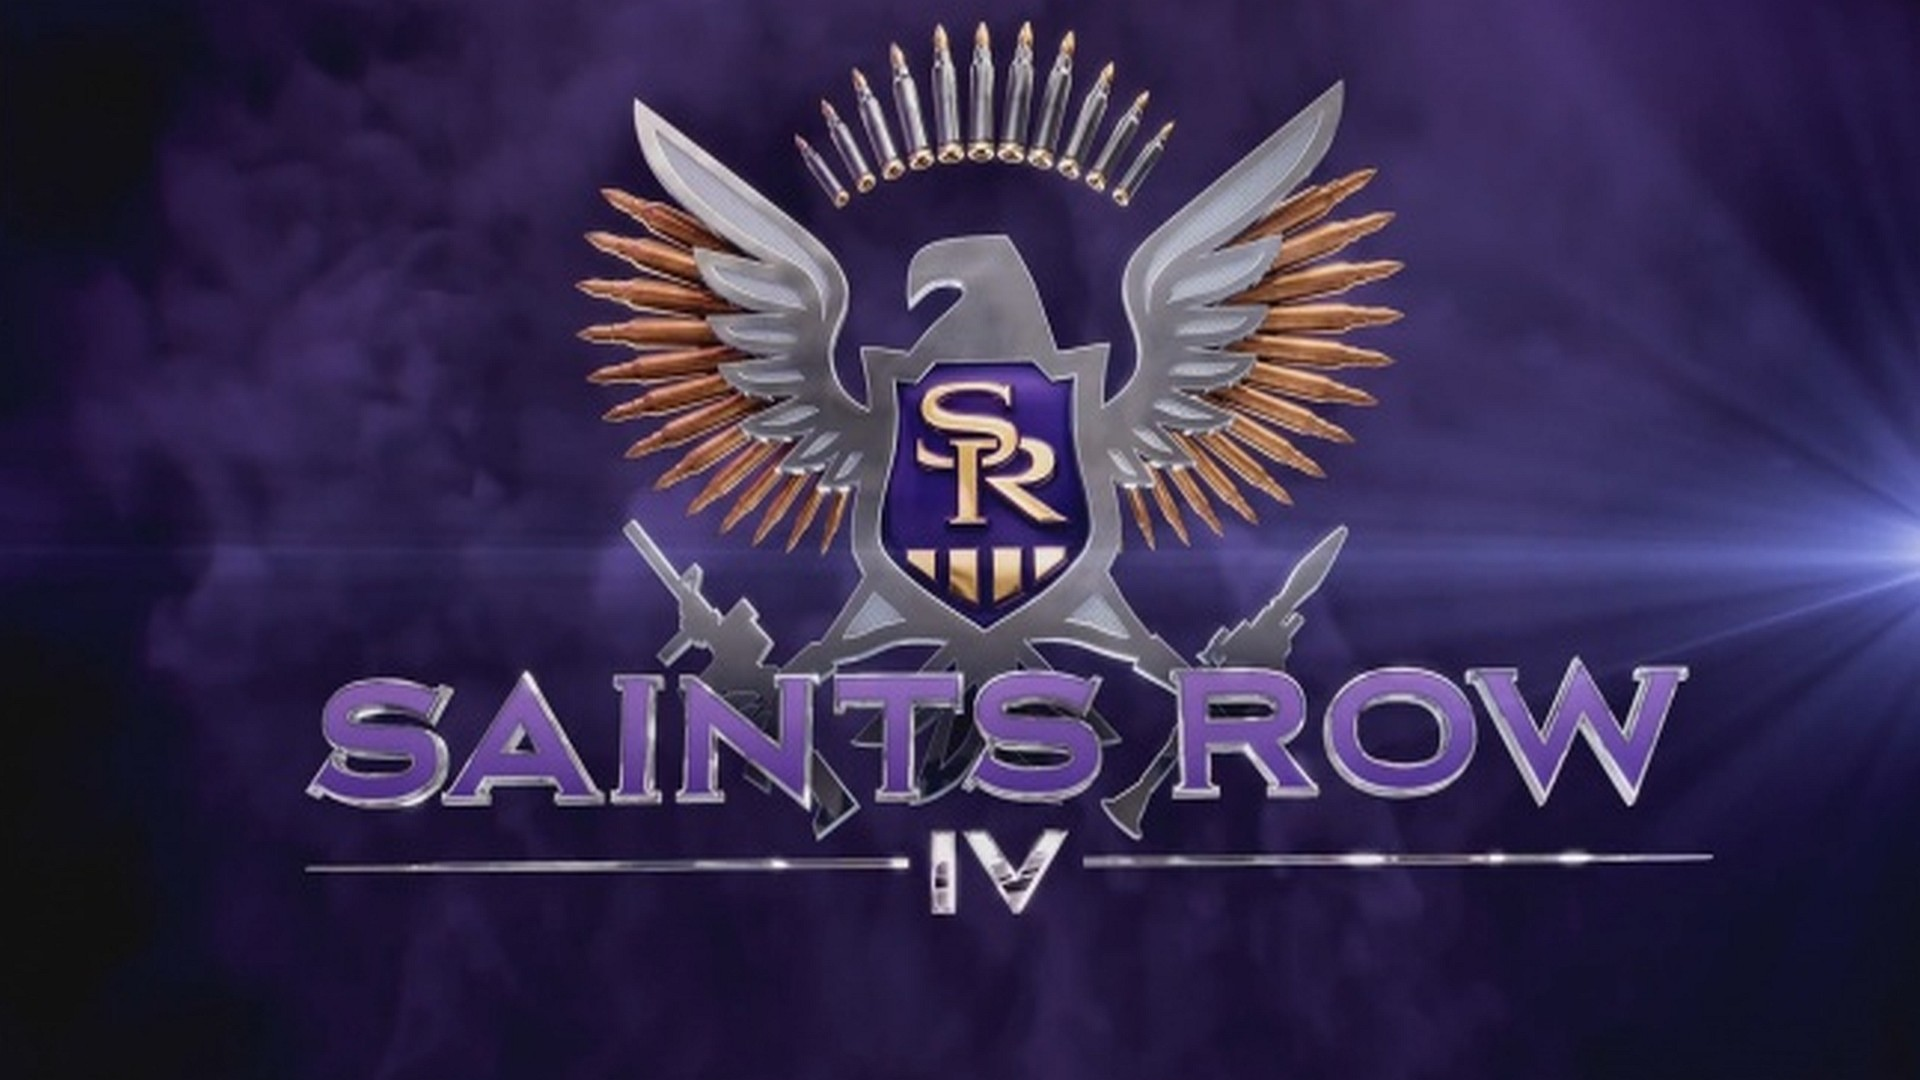 1920x1080 Saints Row Wallpaper Collection For Free Download Tupac Wallpaper